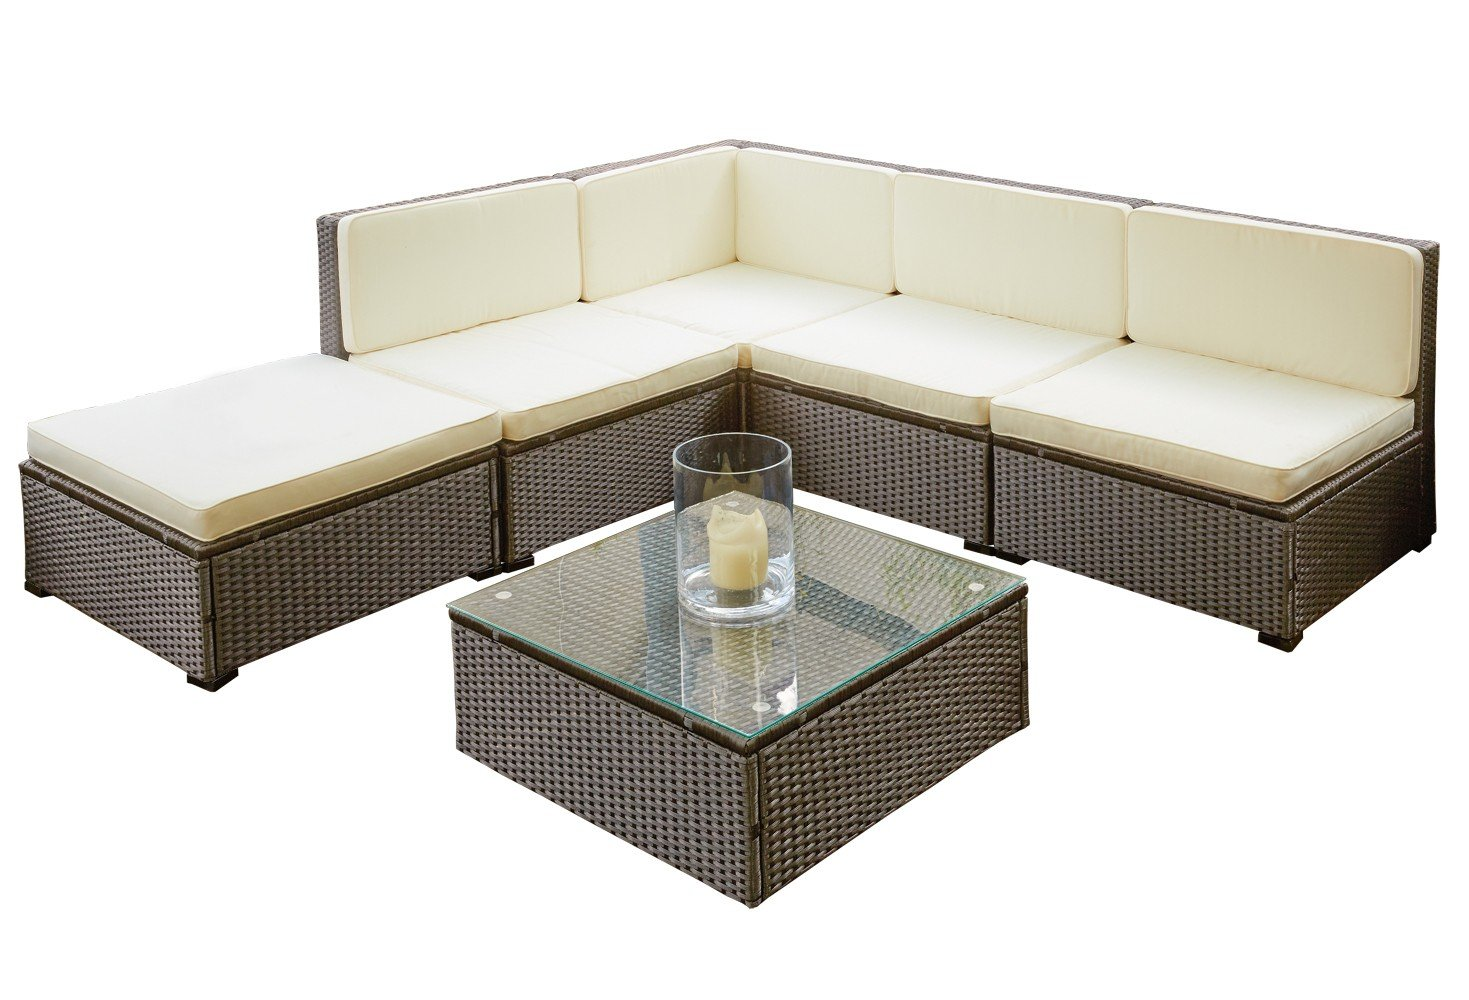 poly rattan sitzgruppe sitzgarnitur gartenm bel sofa lounge garten mit tisch braun lagento. Black Bedroom Furniture Sets. Home Design Ideas